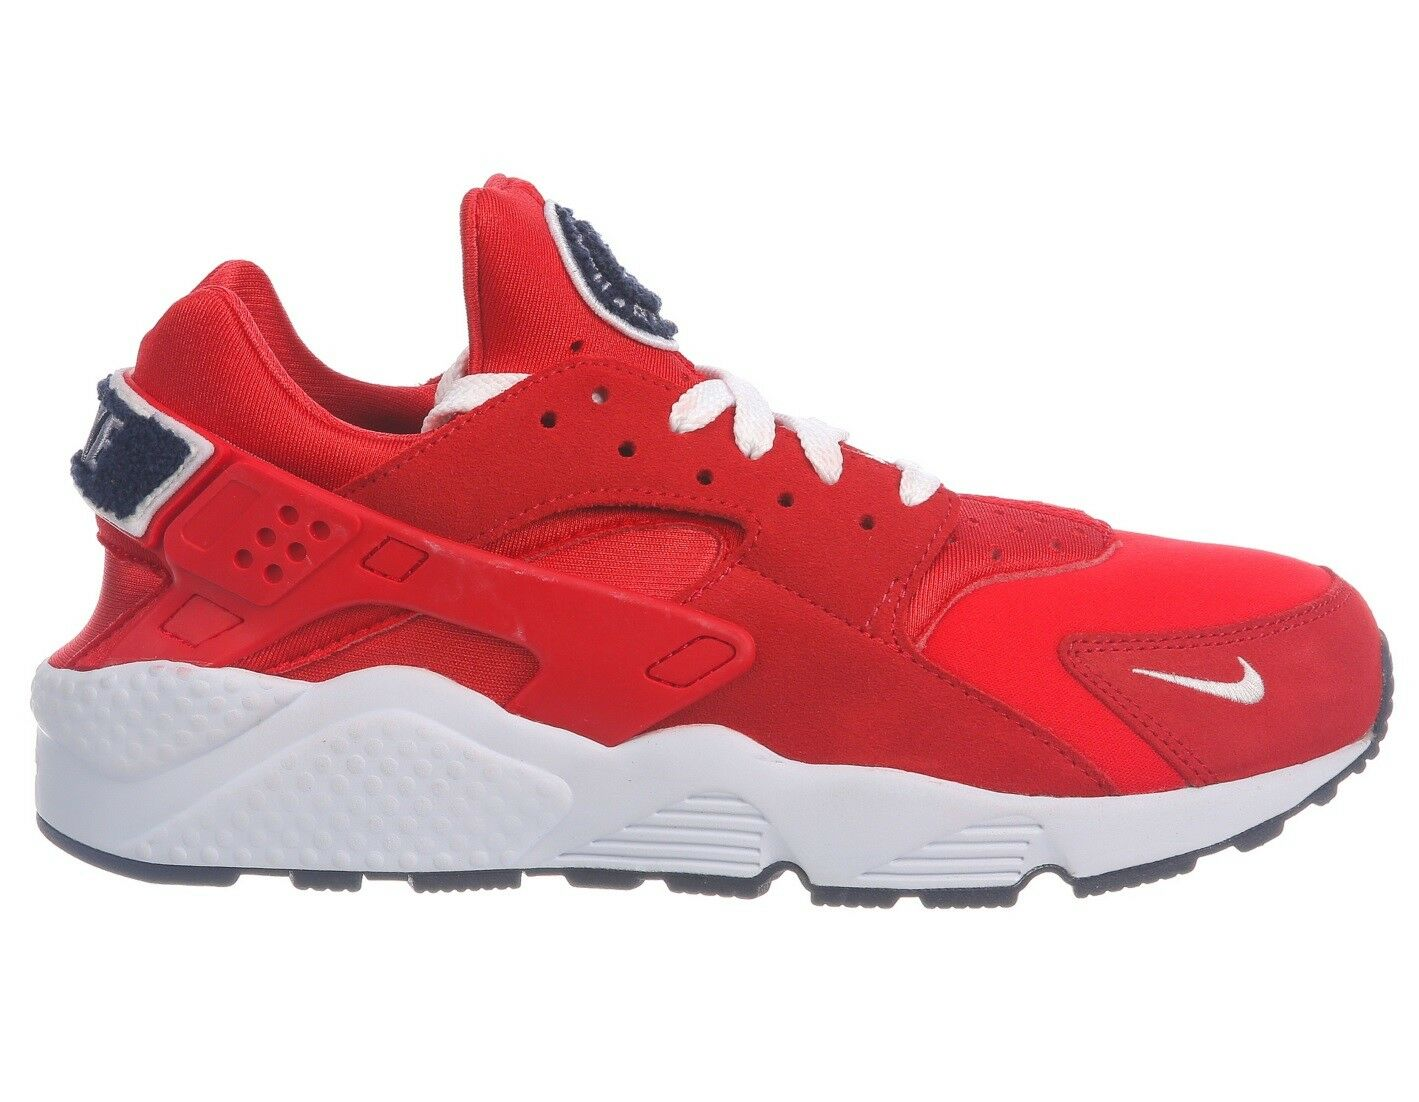 Nike Air Huarache Run Premium Varsity Mens 704830-602 Red Running Shoes Comfortable New shoes for men and women, limited time discount